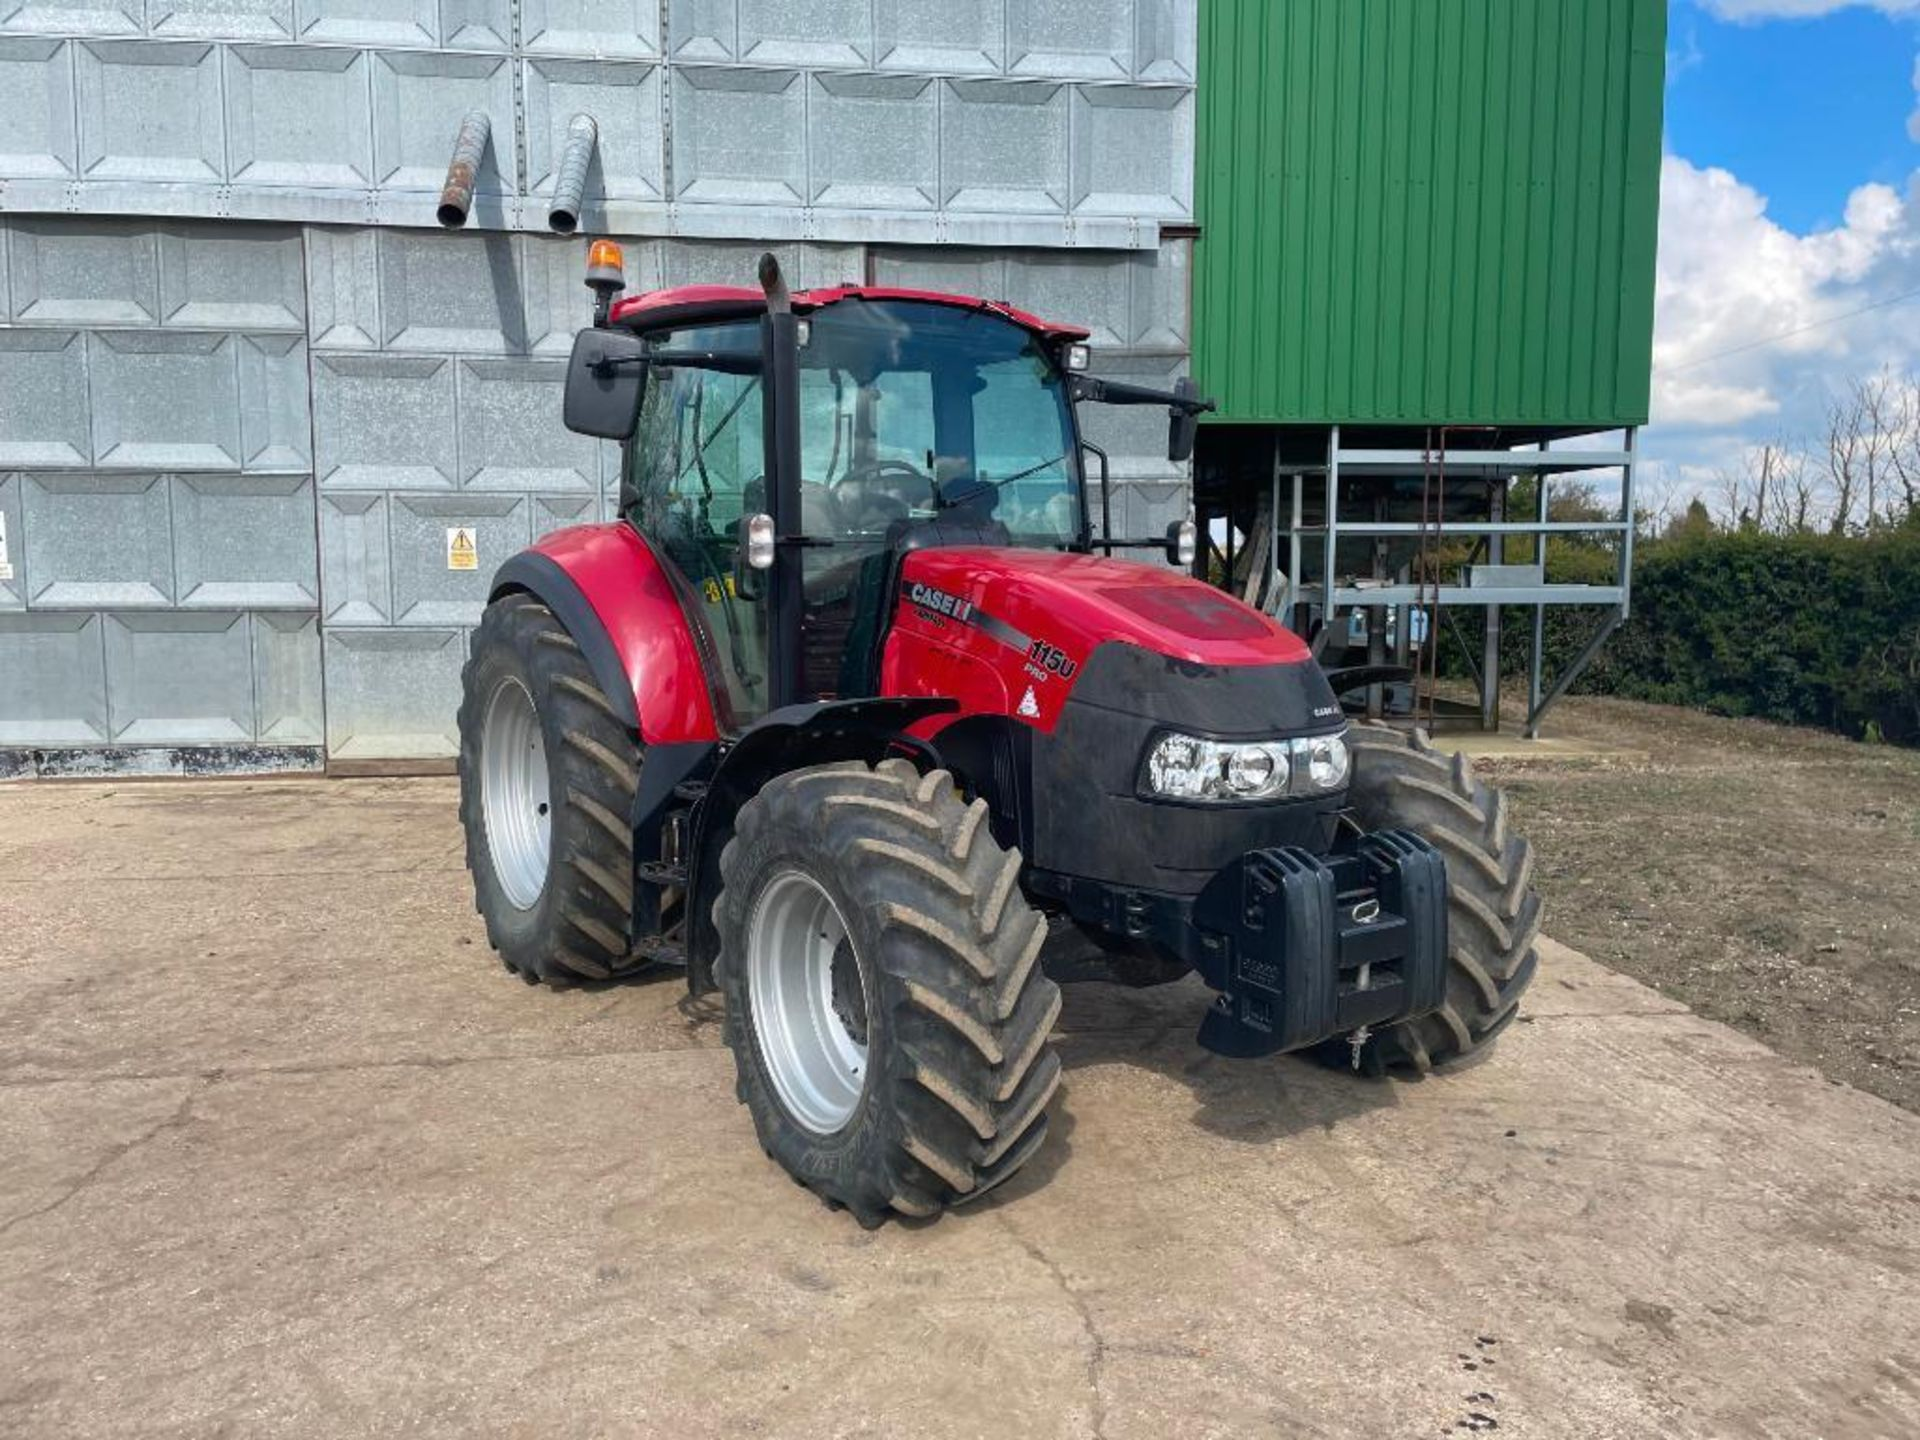 2014 Case IH Farmall 115U PRO 40Kph 4wd tractor with 2 spools, PUH on 440/65R24 front and 540/65R34 - Image 6 of 10